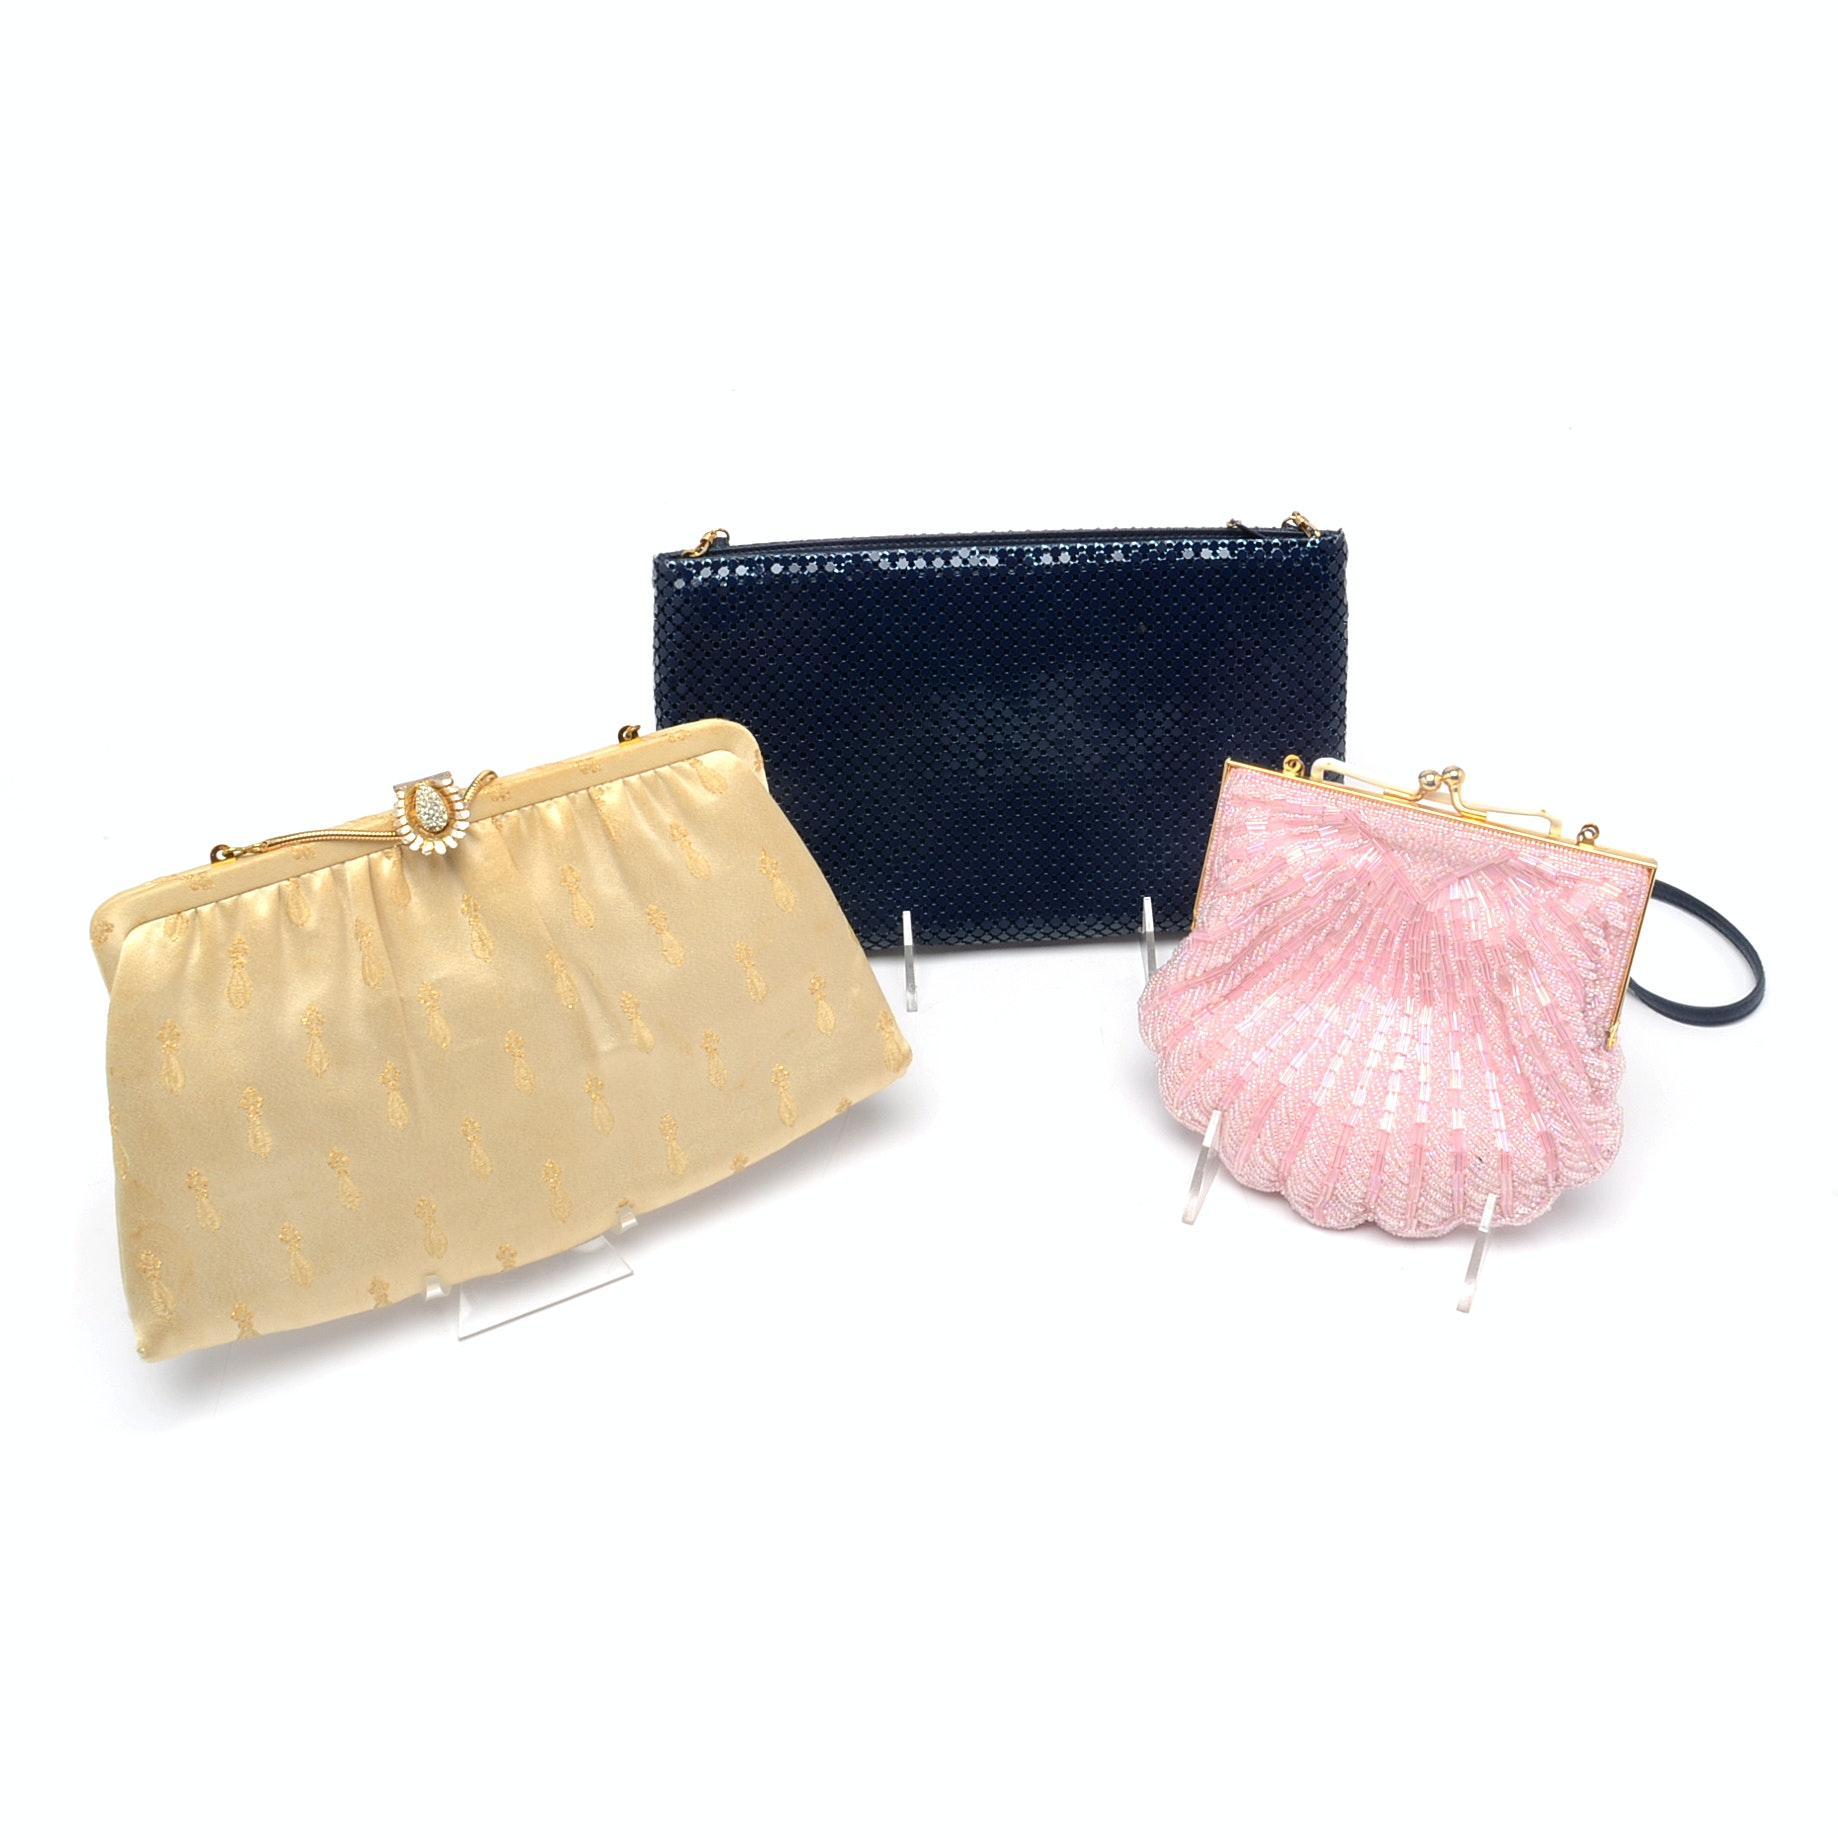 Assorted Evening Handbags with Detachable Handles